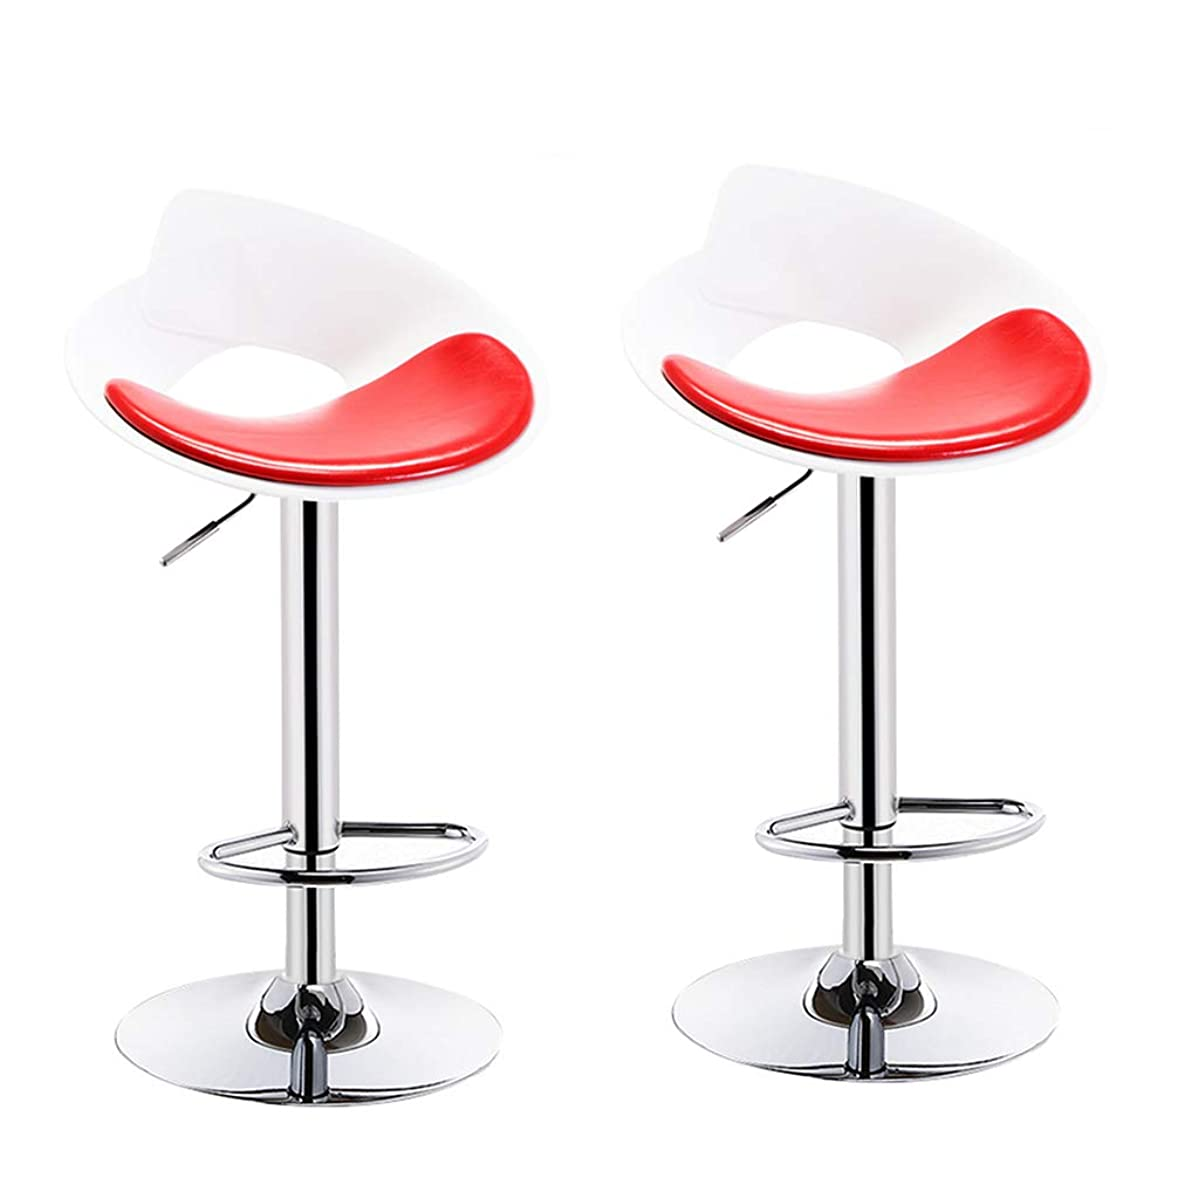 Ailj Bar Stools Swivel Barstool Chairs with Back, Counter Height Stools, Stable Large Chrome Base,Oil Wax Fabric, Black,White, Red Suitable for bar Home (Color : Red×2)